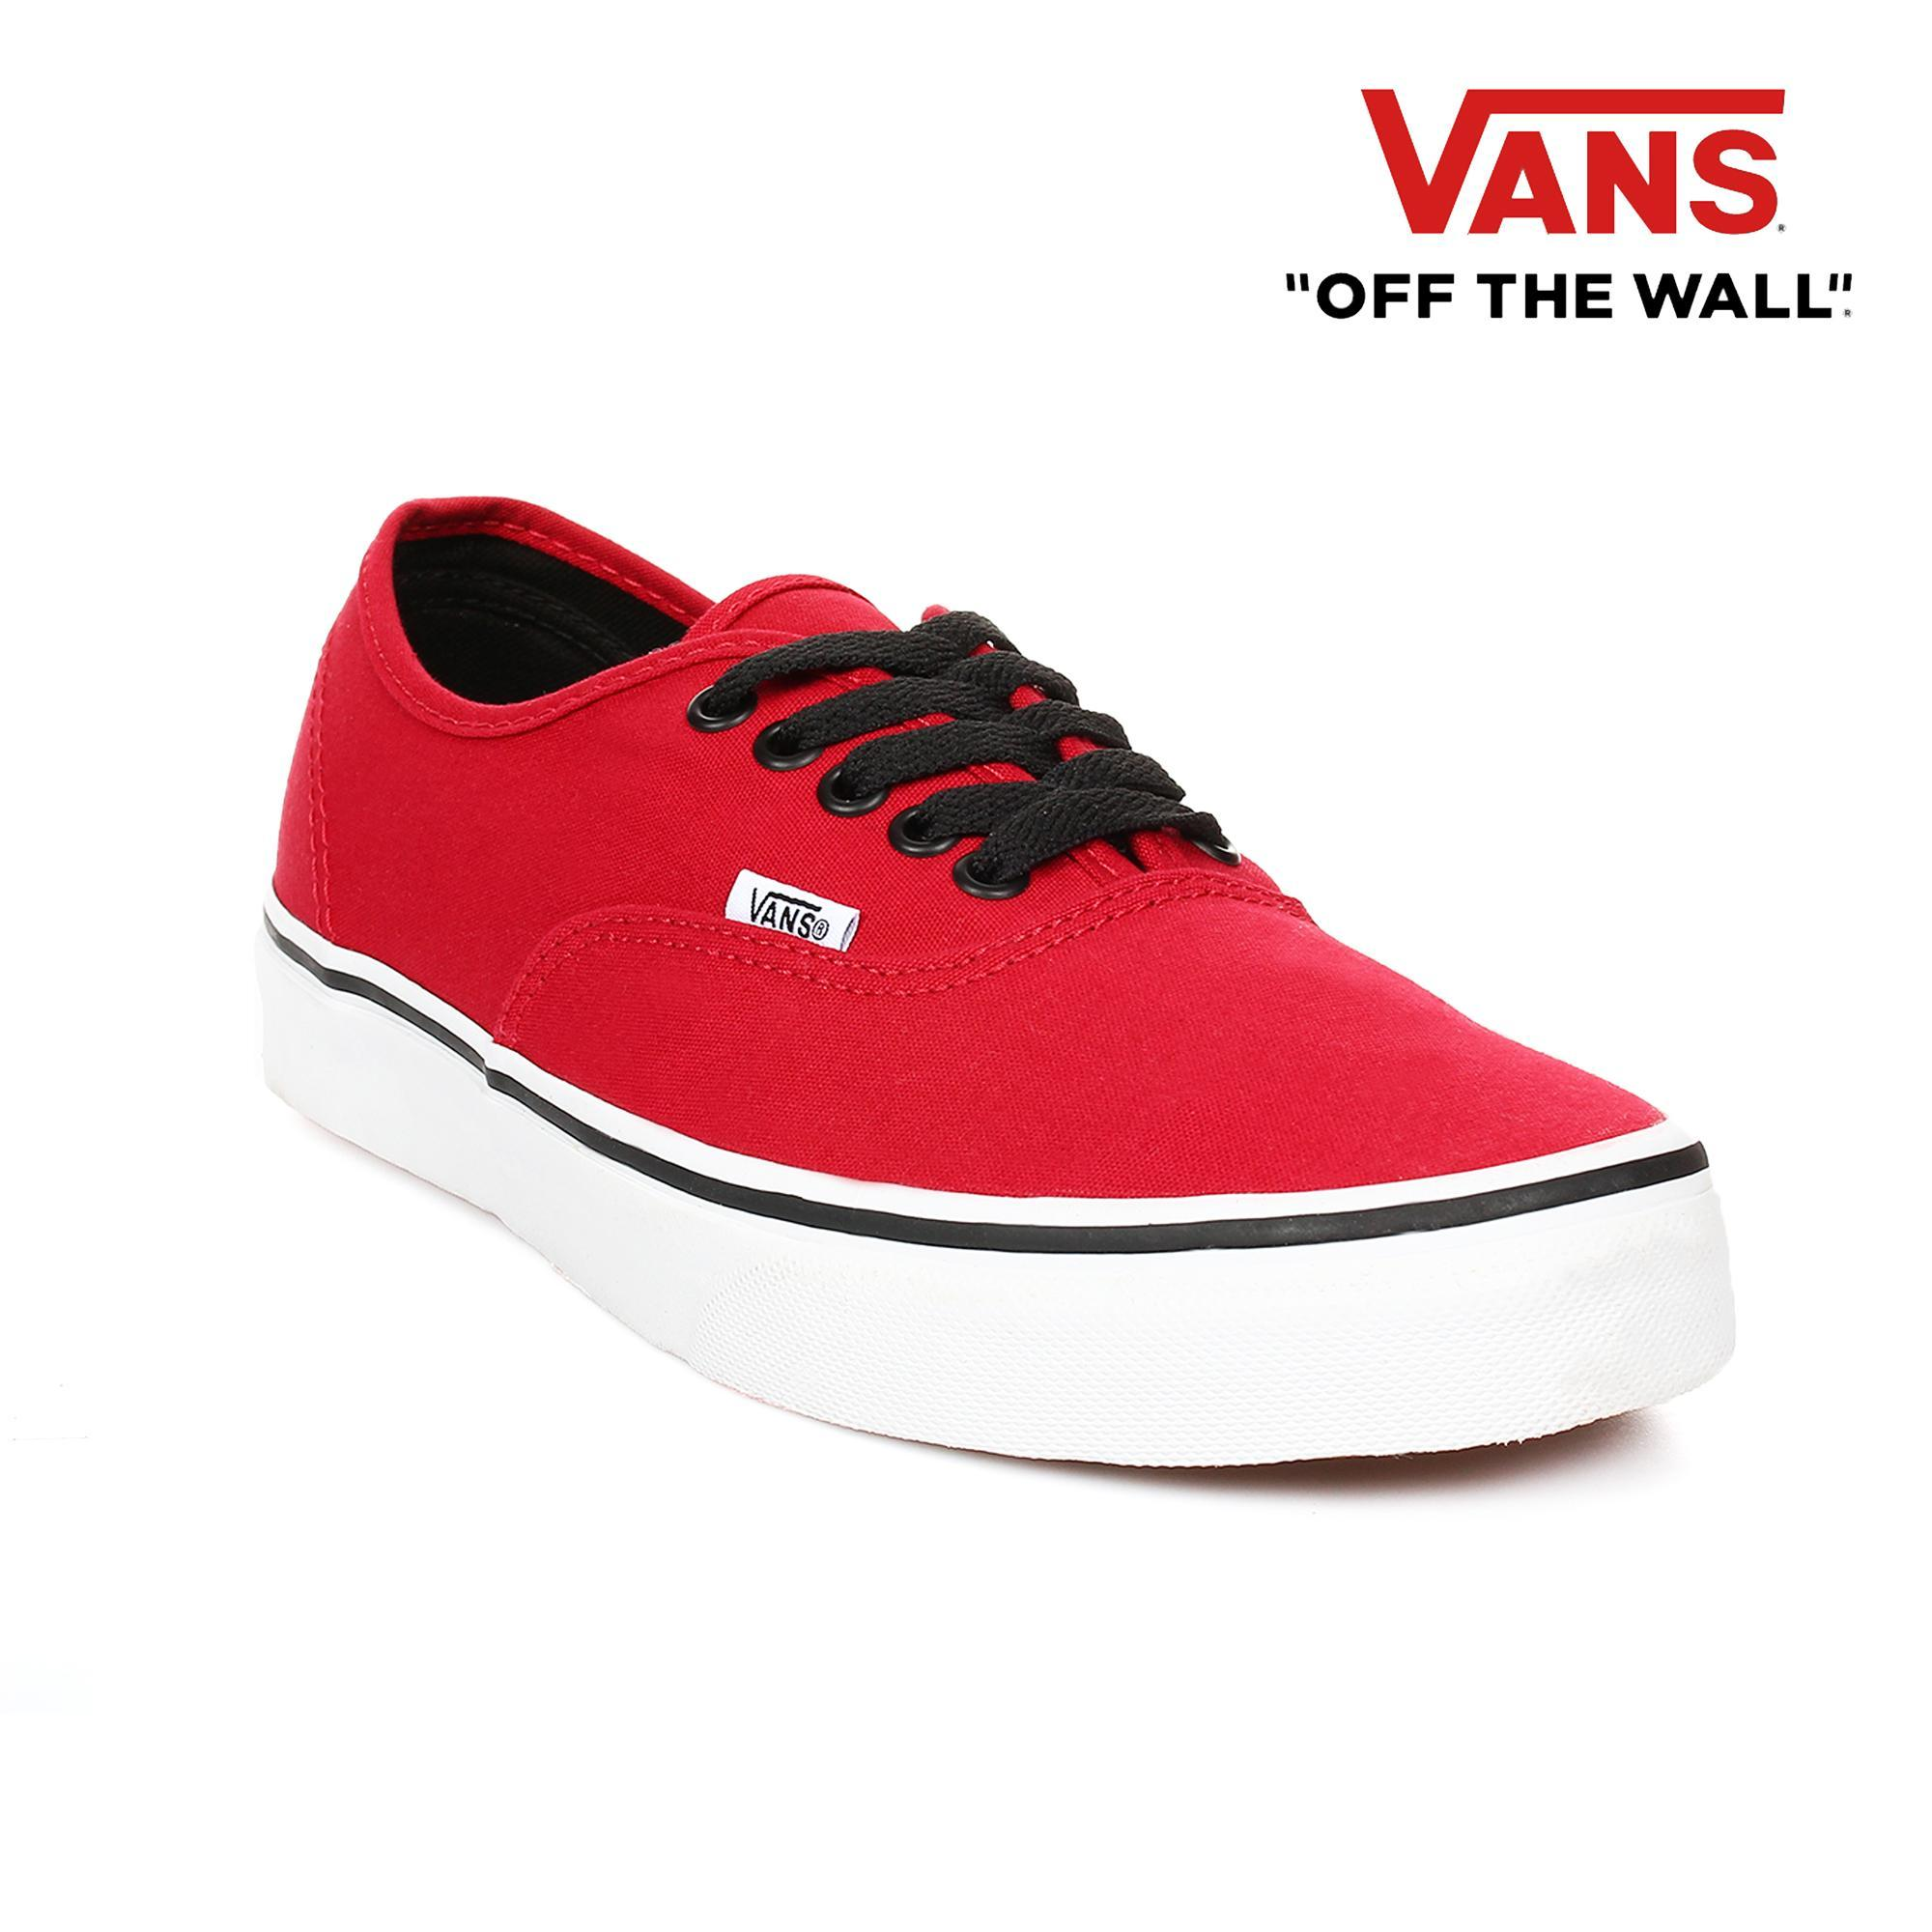 47a473e318 Vans Shoes for Men Philippines - Vans Men s Shoes for sale - prices ...